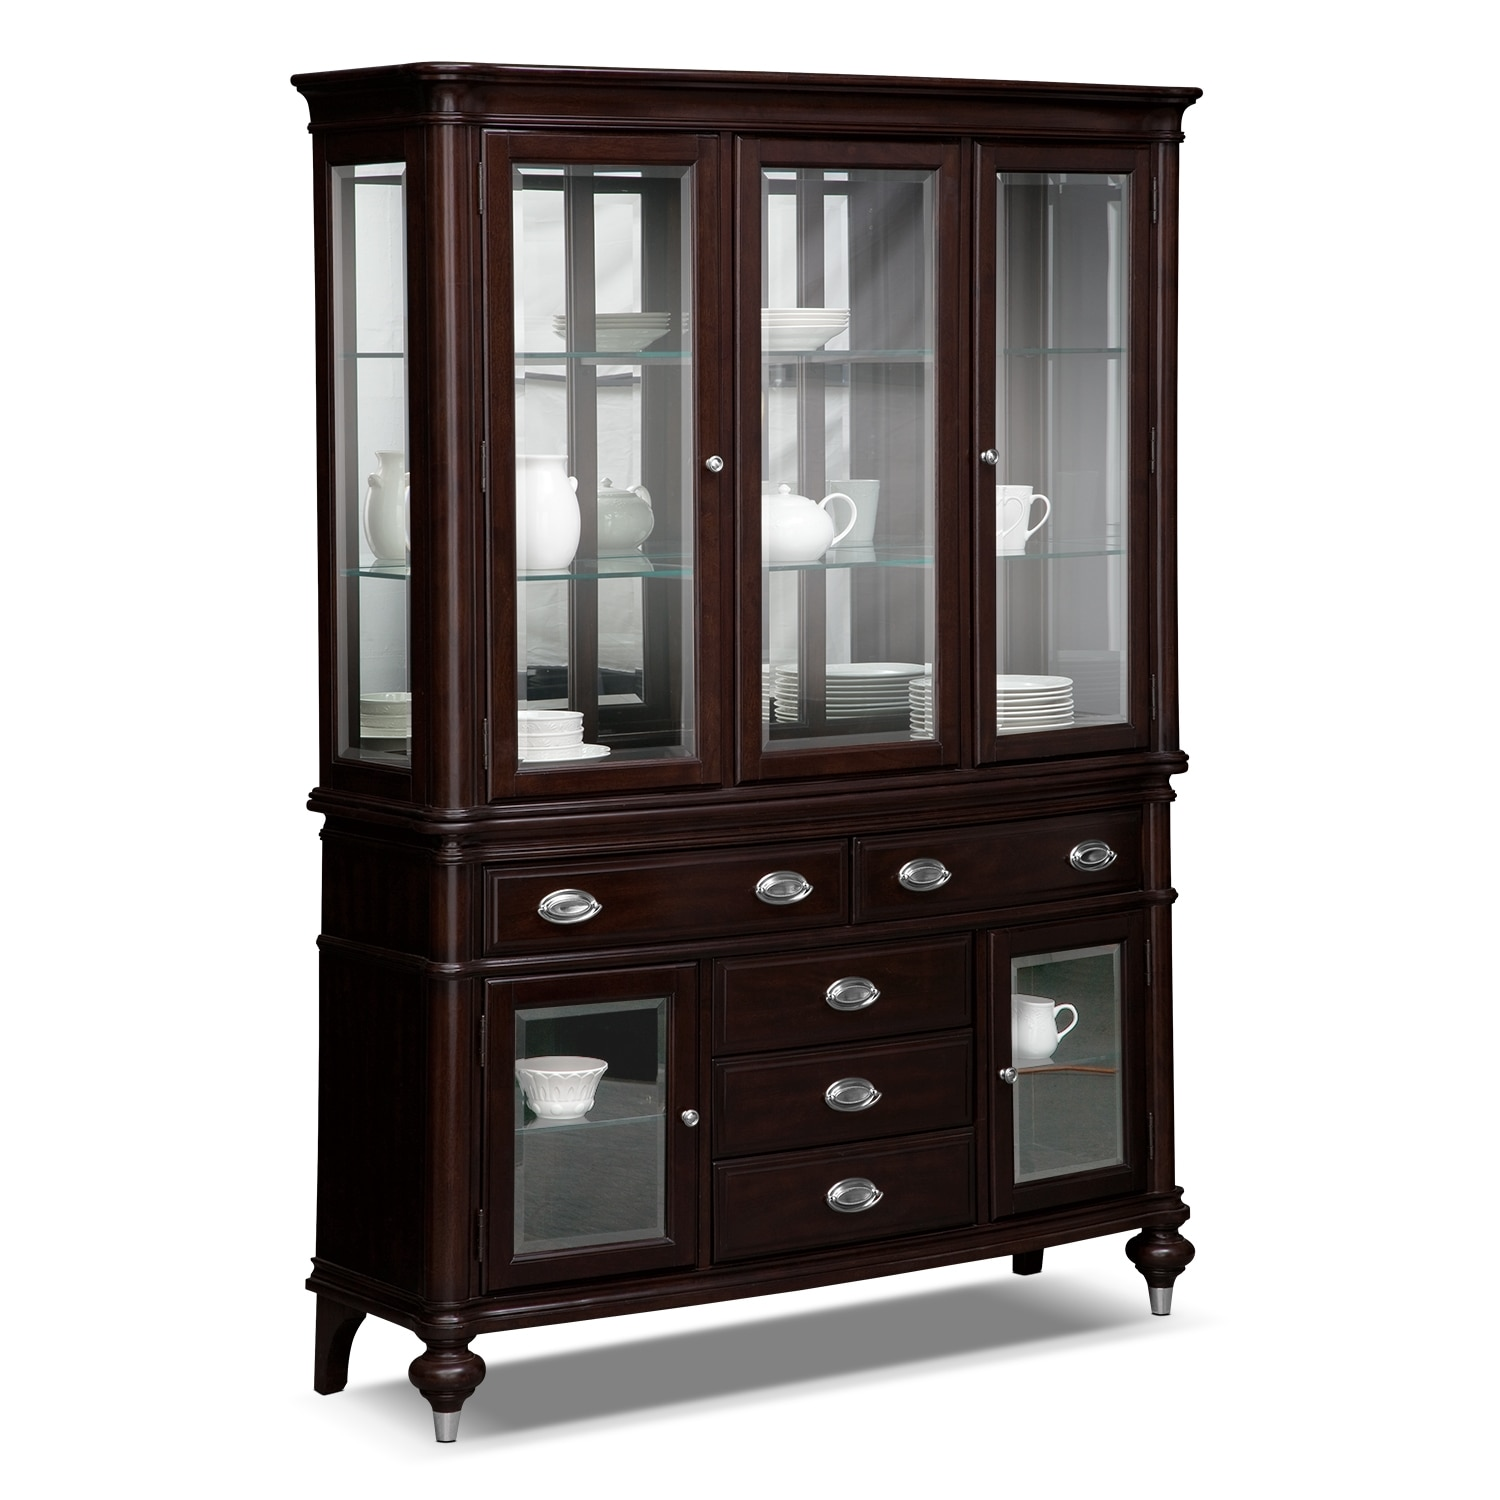 Esquire dining room buffet and hutch value city furniture for A dining room hutch